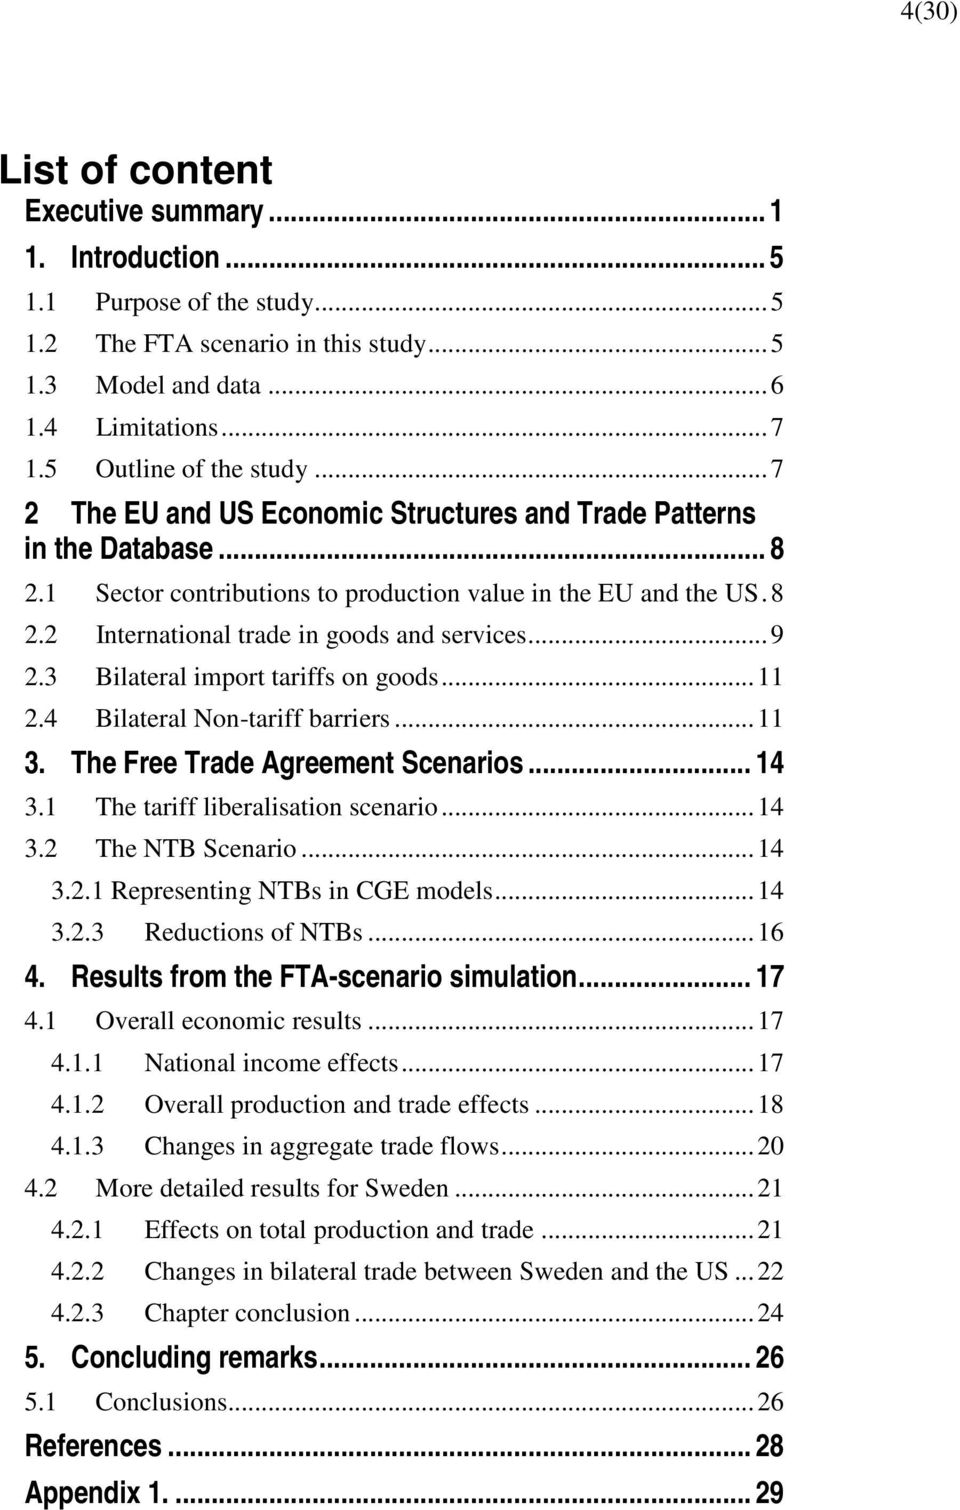 .. 9 2.3 Bilateral import tariffs on goods... 11 2.4 Bilateral Non-tariff barriers... 11 3. The Free Trade Agreement Scenarios... 14 3.1 The tariff liberalisation scenario... 14 3.2 The NTB Scenario.